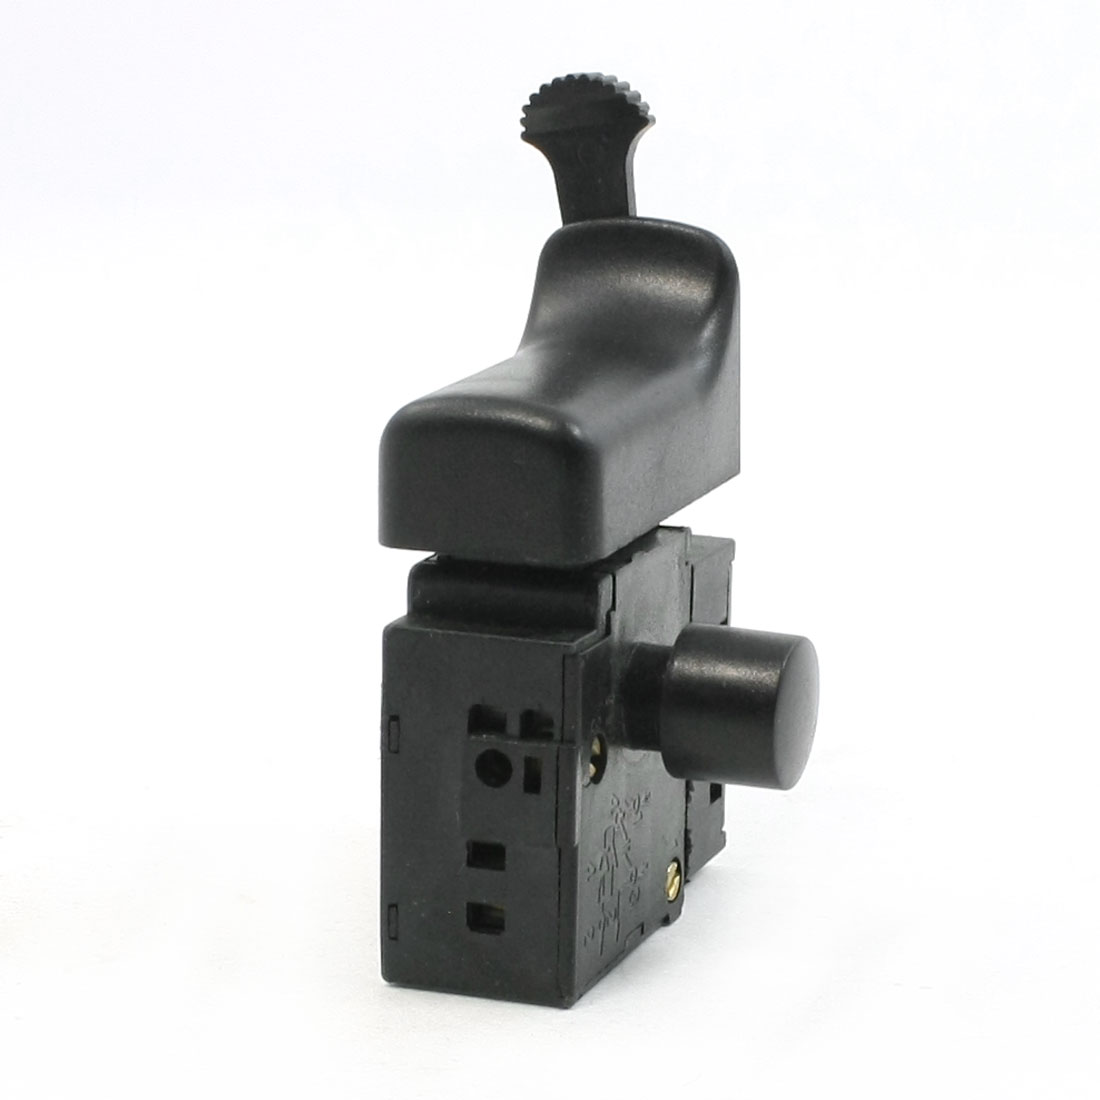 AC 250V 6A Direction Change Lever Trigger Switch for Electrical Drill